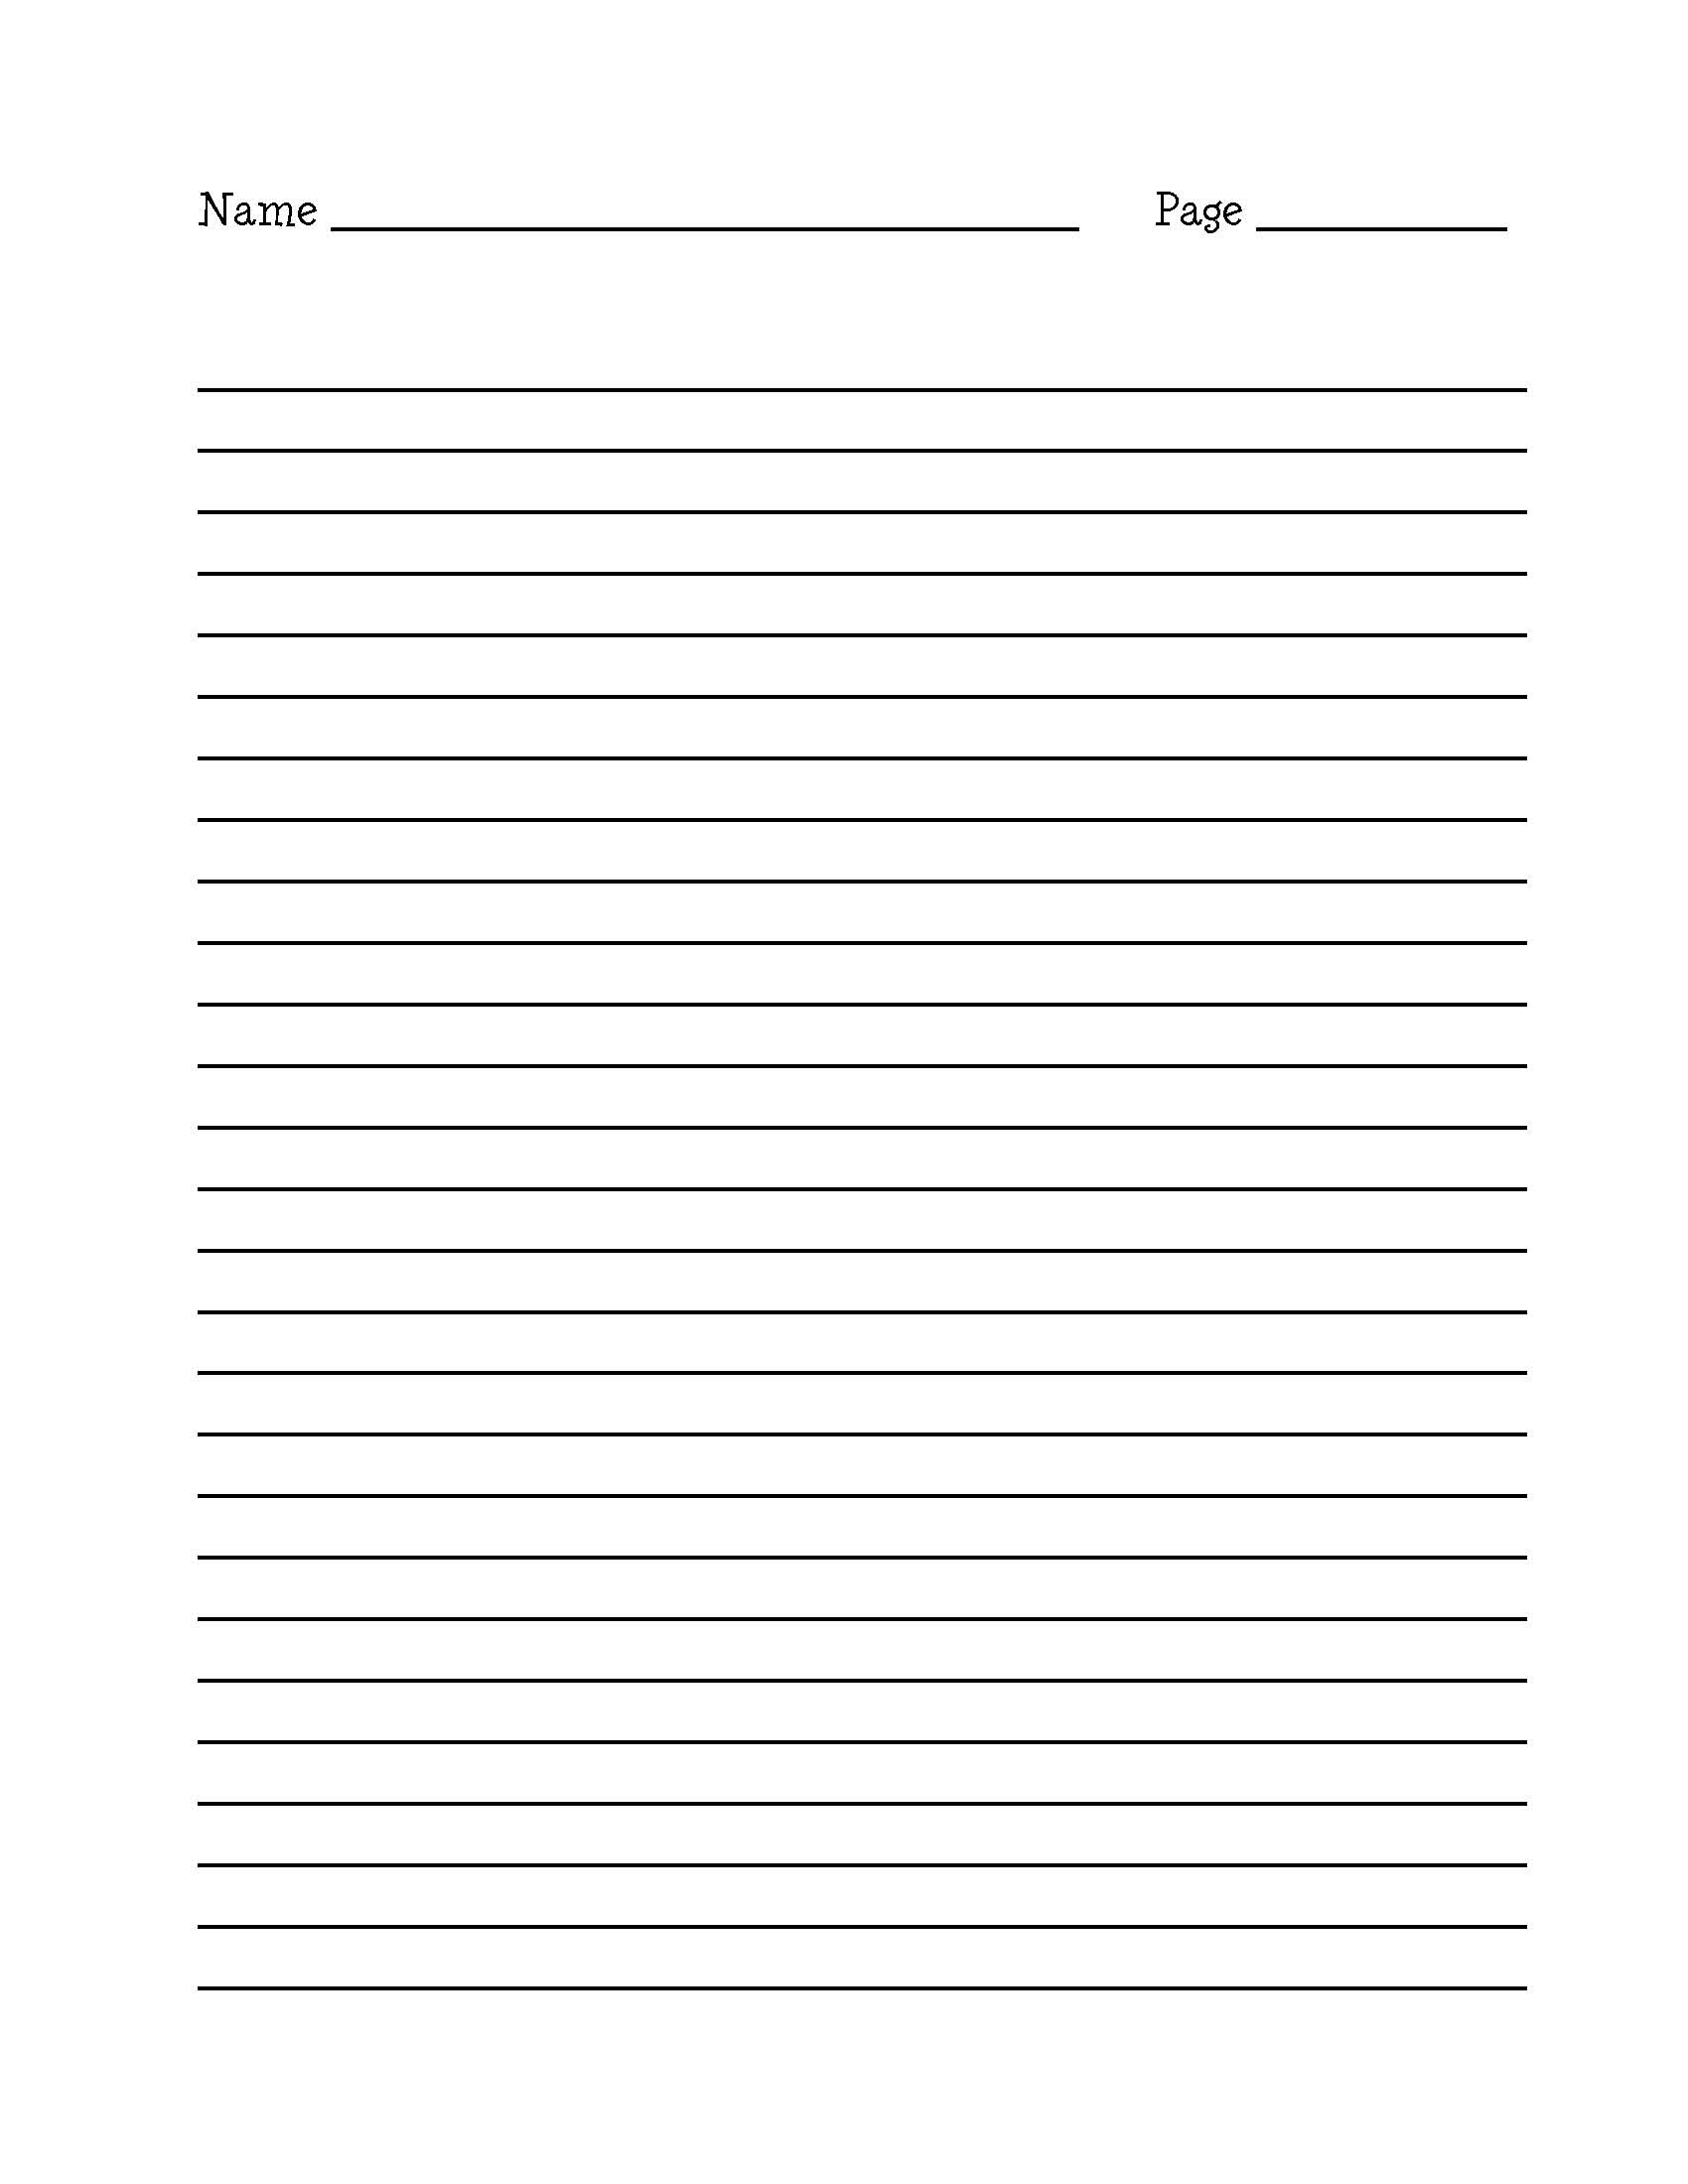 Blank Editable Lined Paper Template Word Pdf   Lined Paper Template - Free Printable Lined Paper